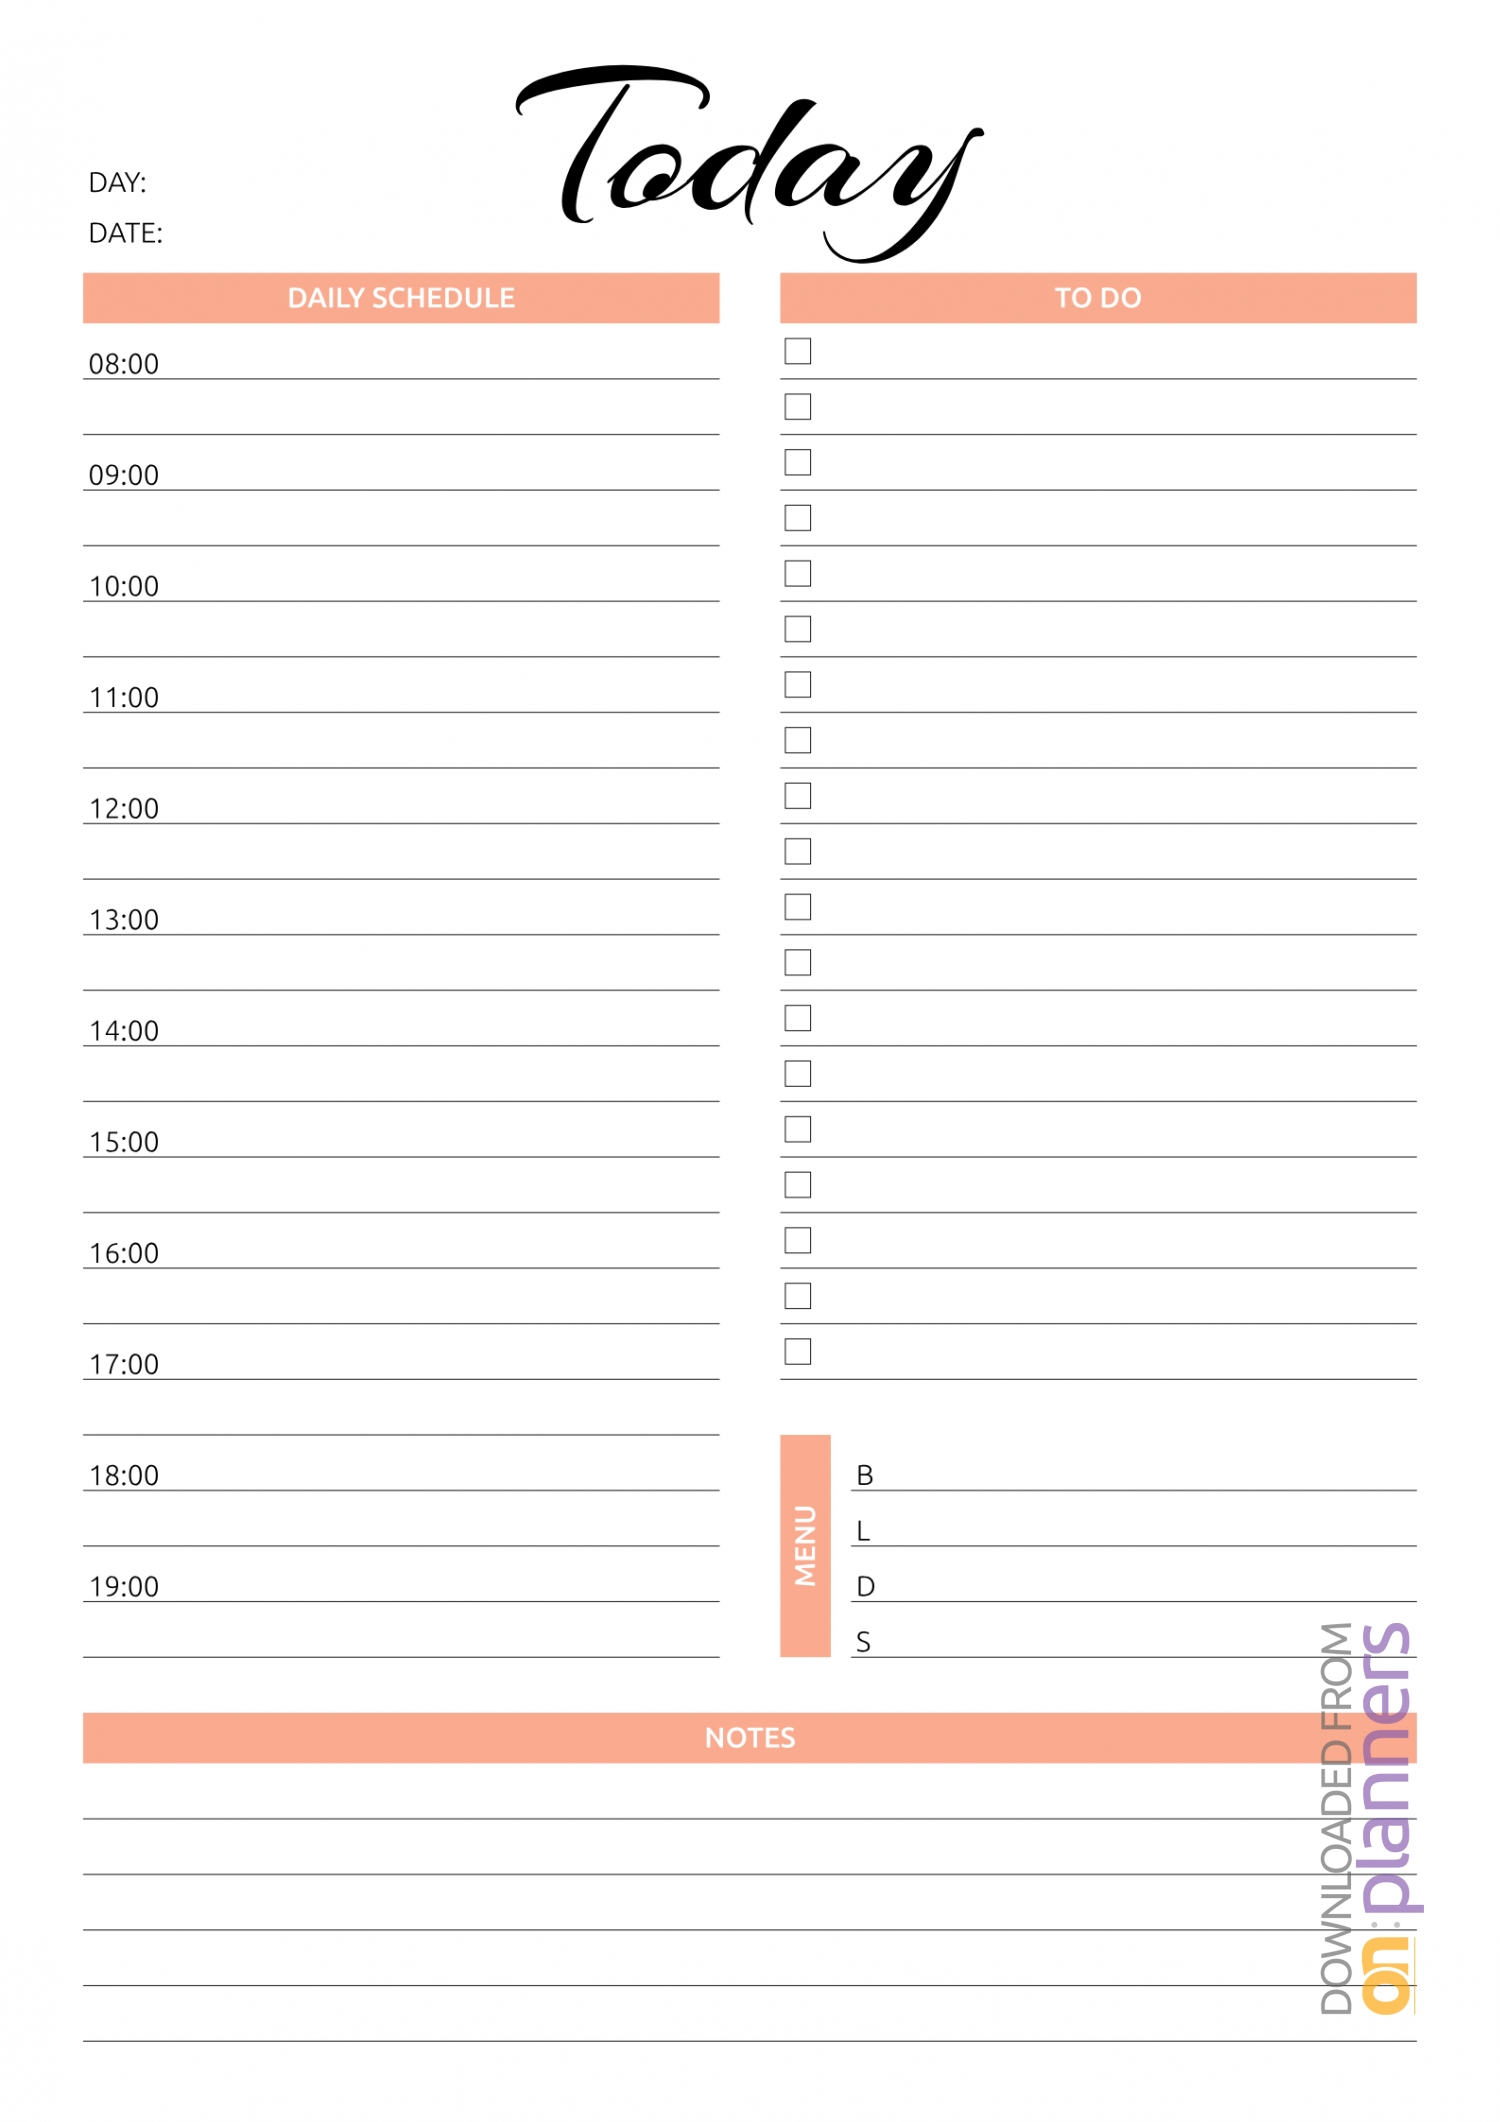 Download Printable Daily Planner Templates 5 In 1 Bundle Pdf-Daily Hourly Calendar Template 2020 Printable